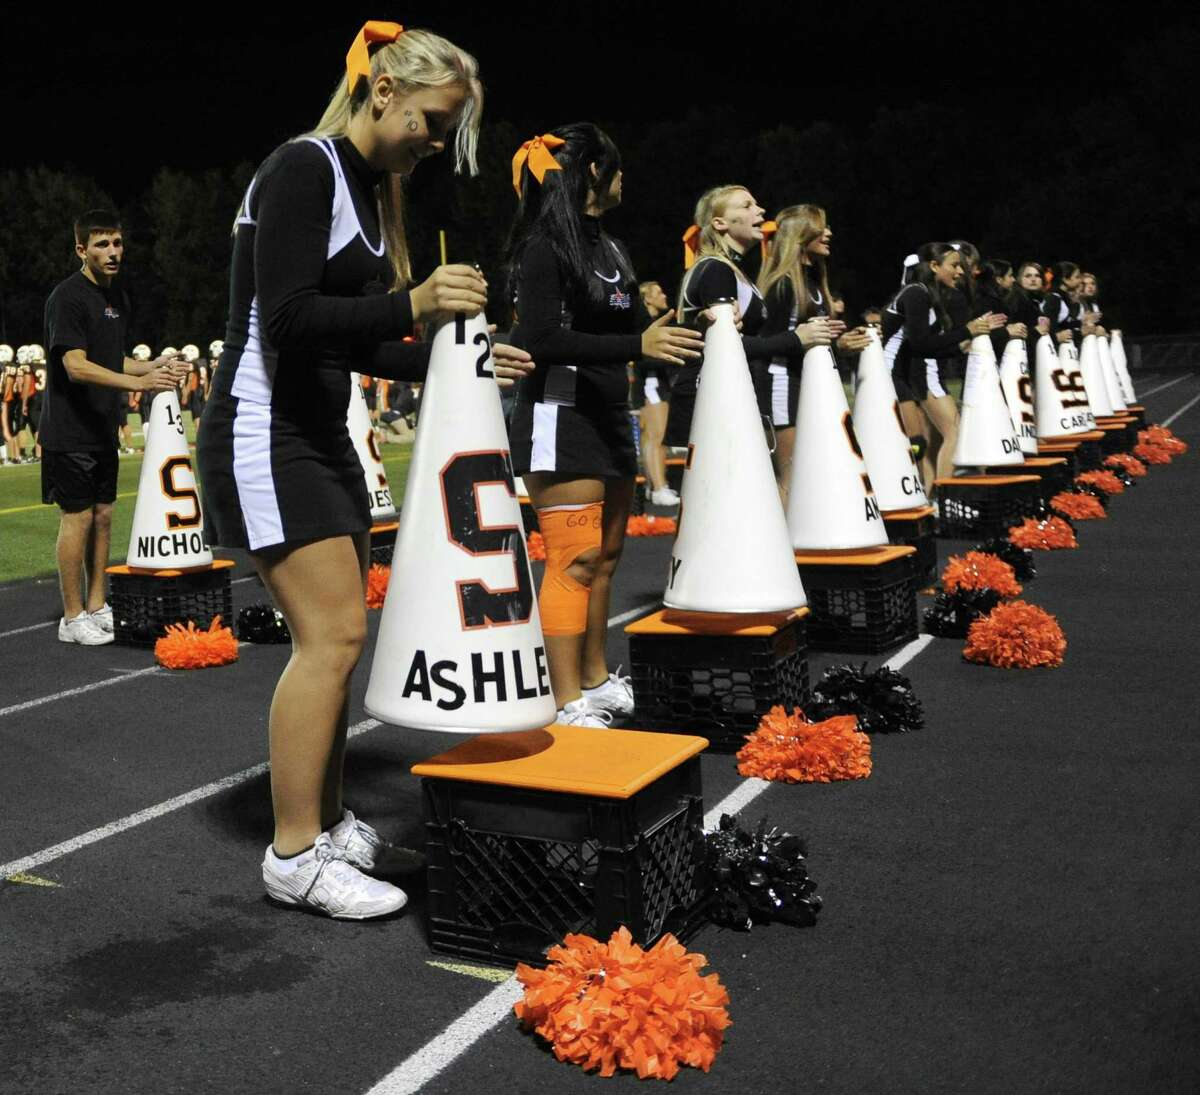 Shelton High School cheerleaders support the Gaels during Friday's game against Wilbur Cross High School on September 17, 2010.